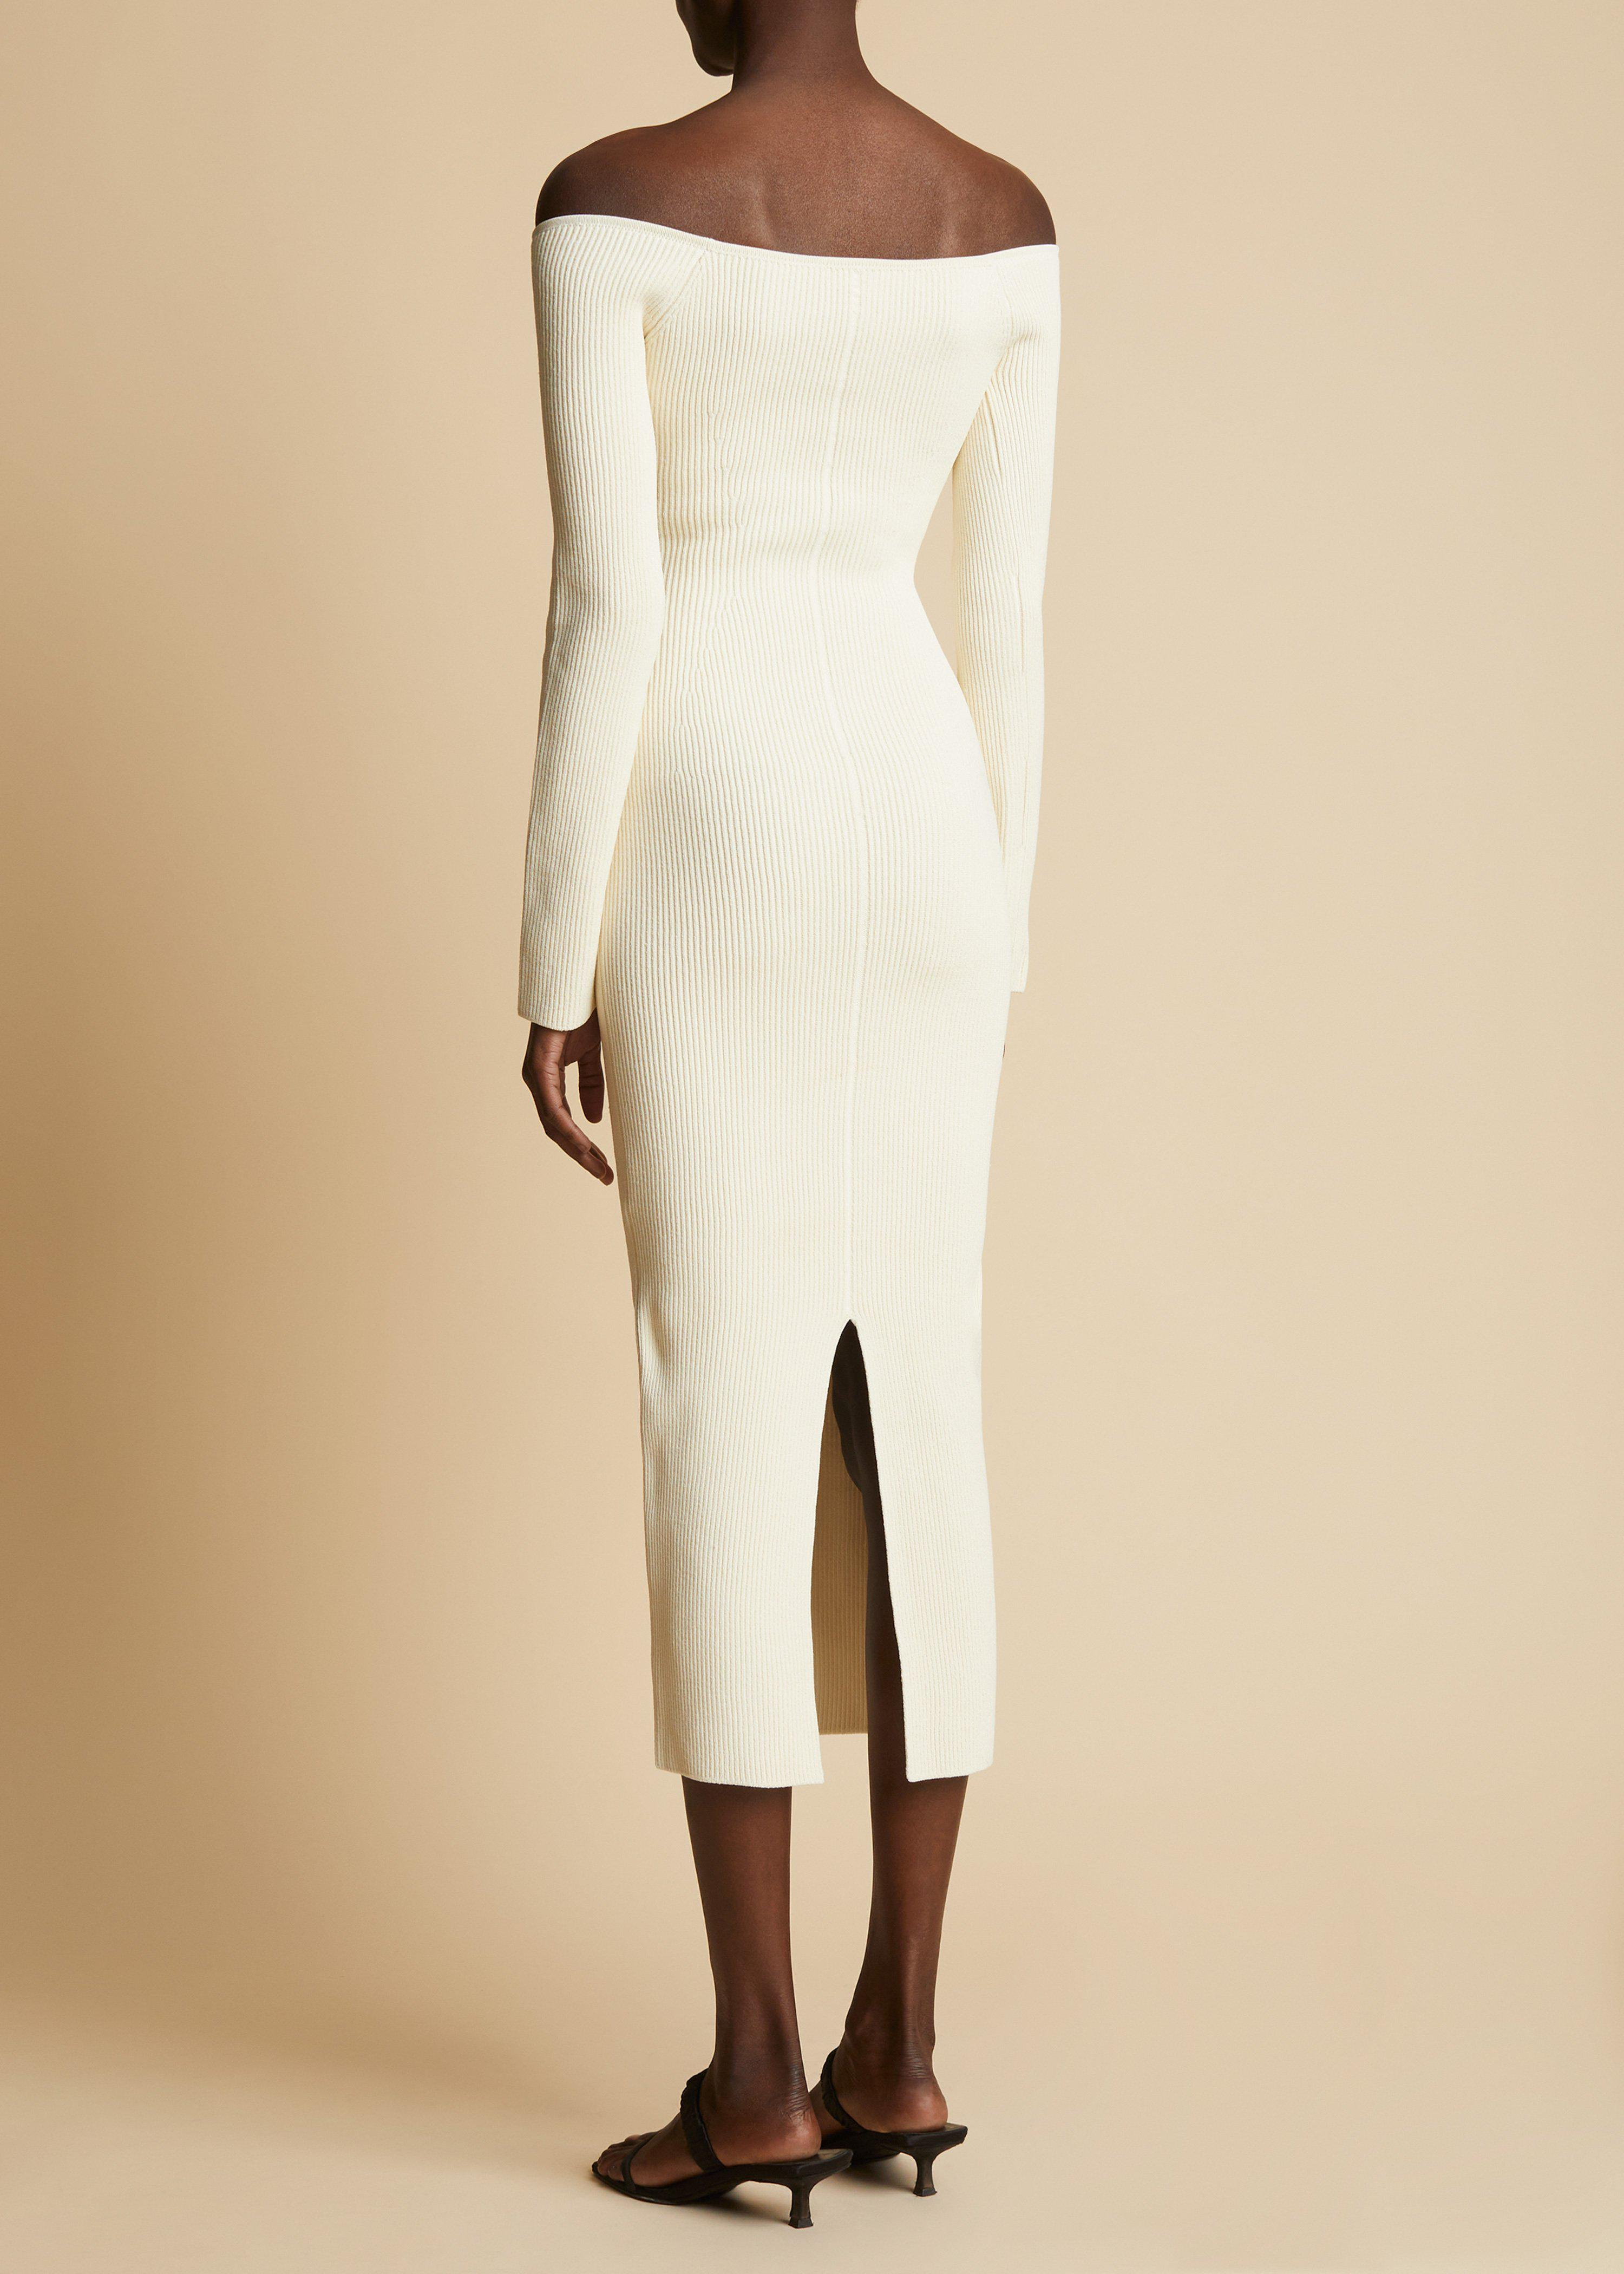 The Pia Dress in Ivory 2